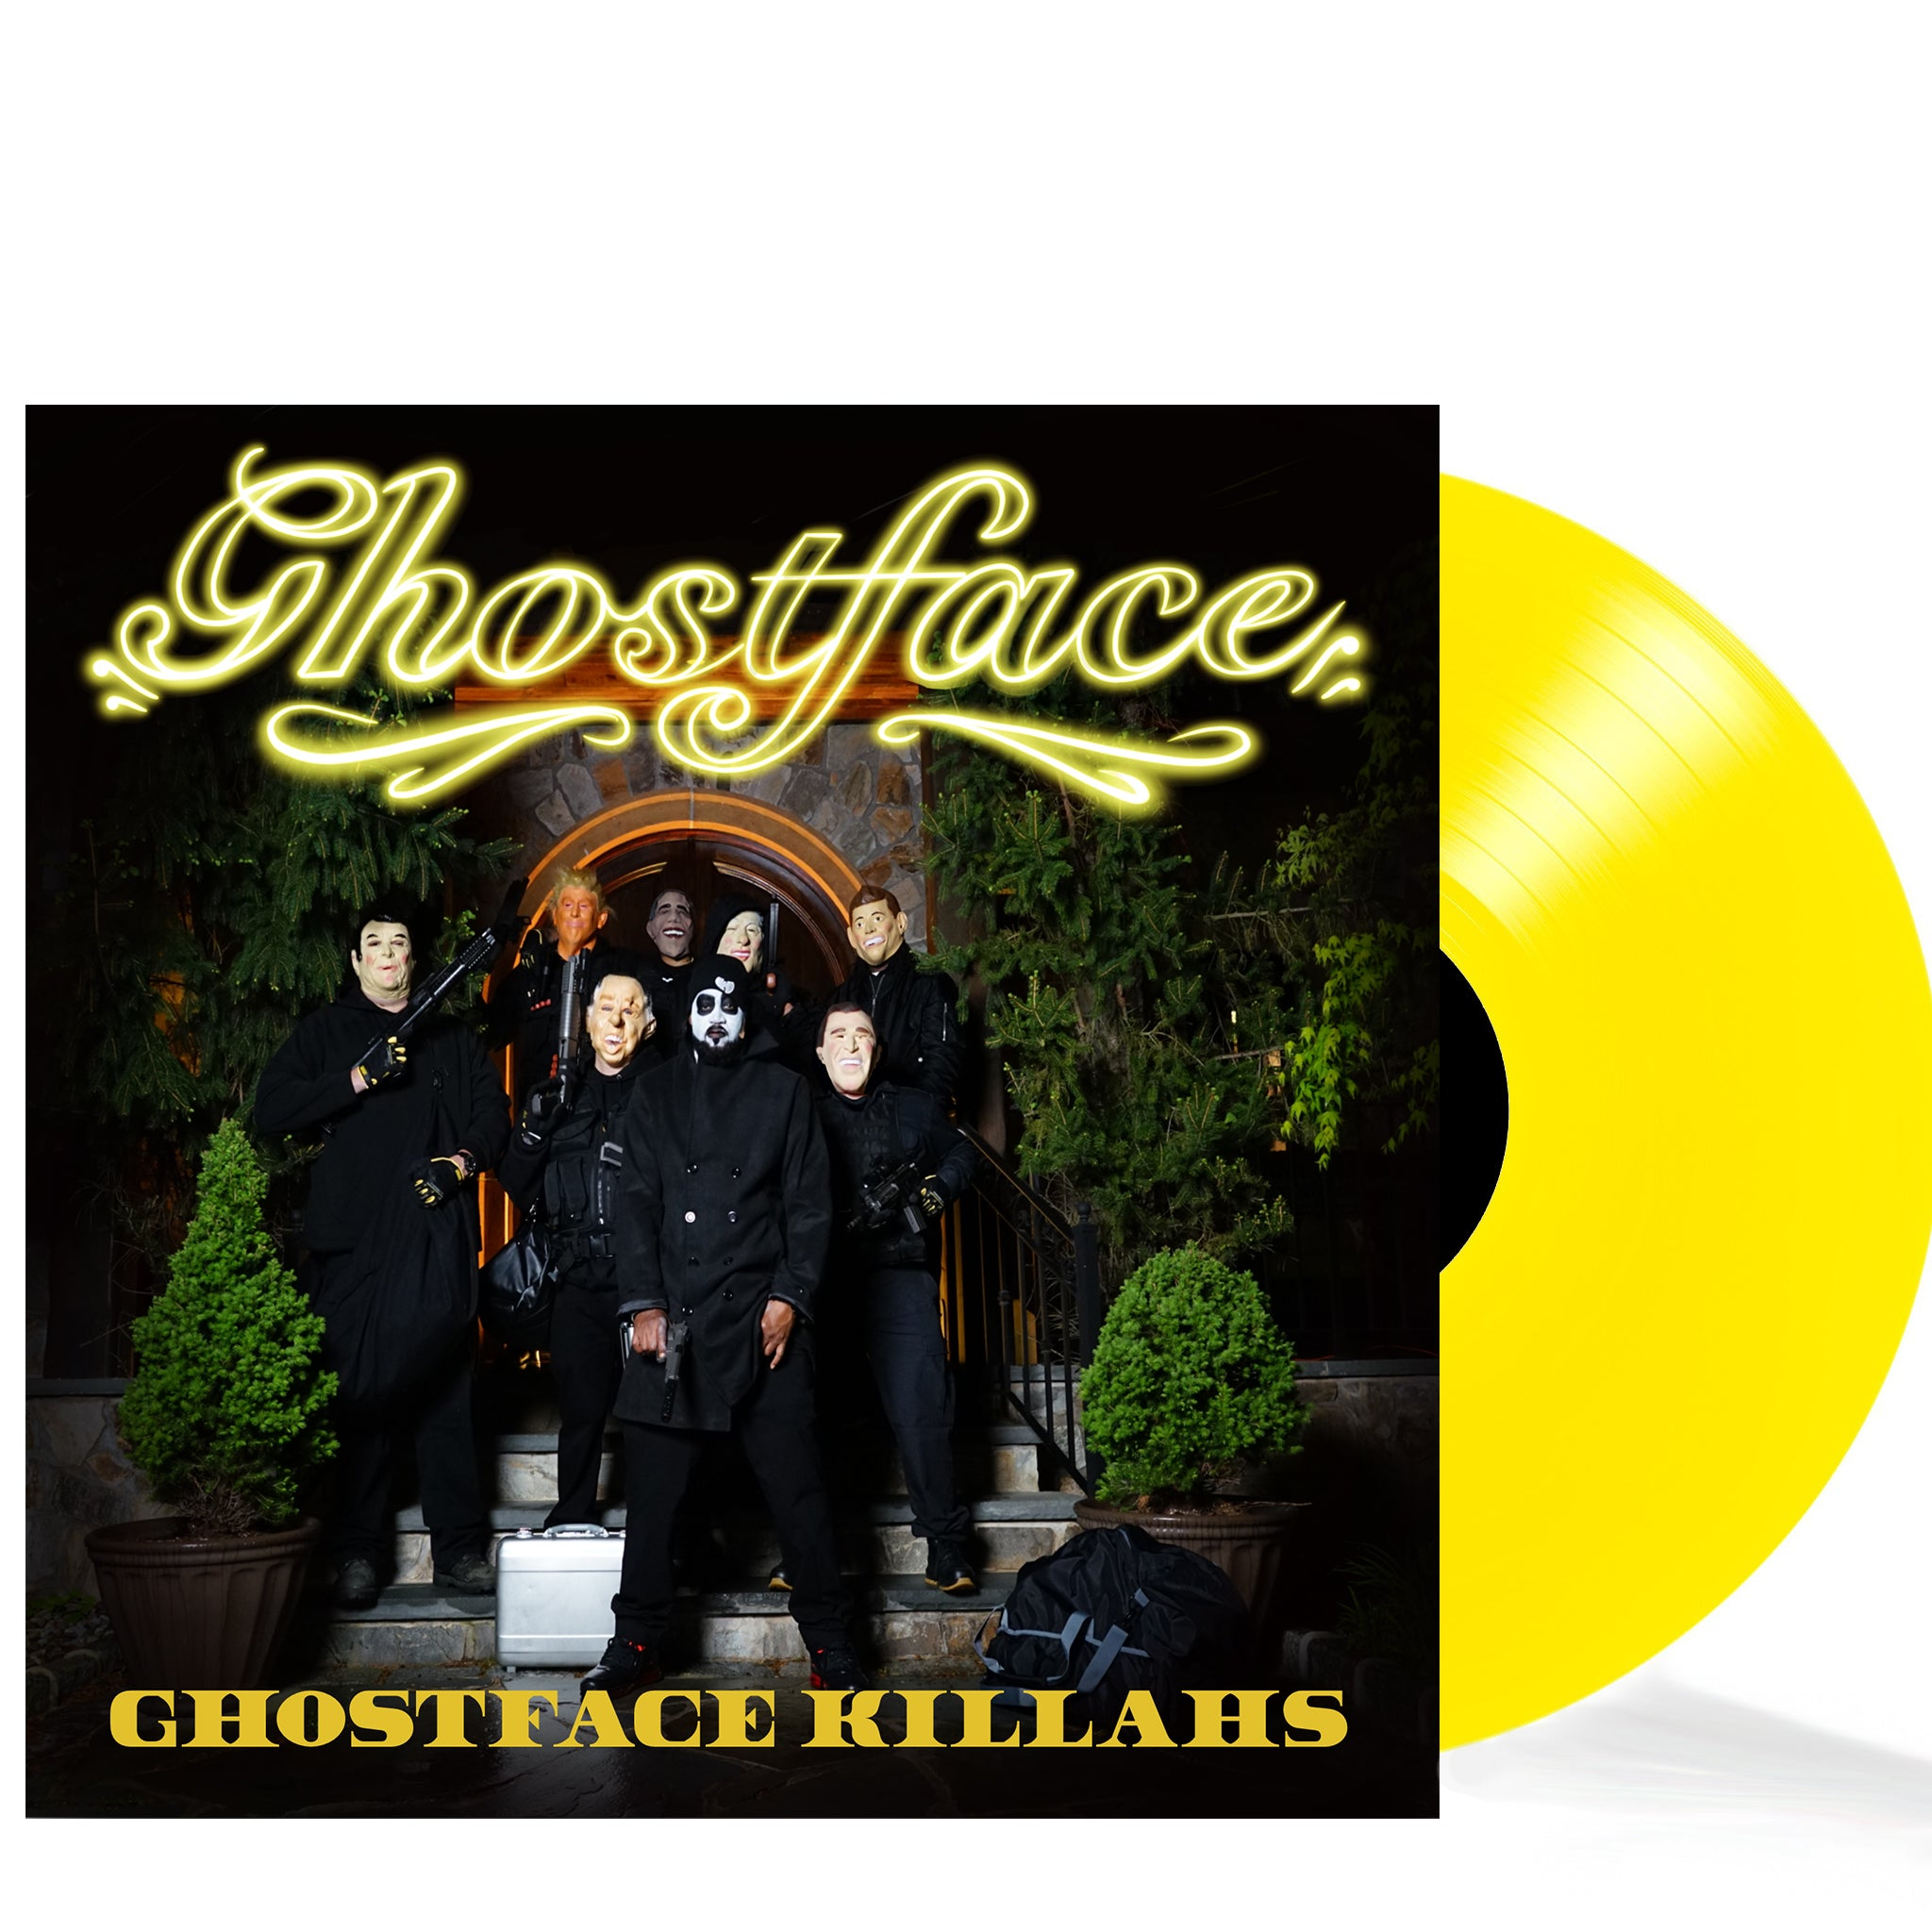 Ghostface Killahs VINYL